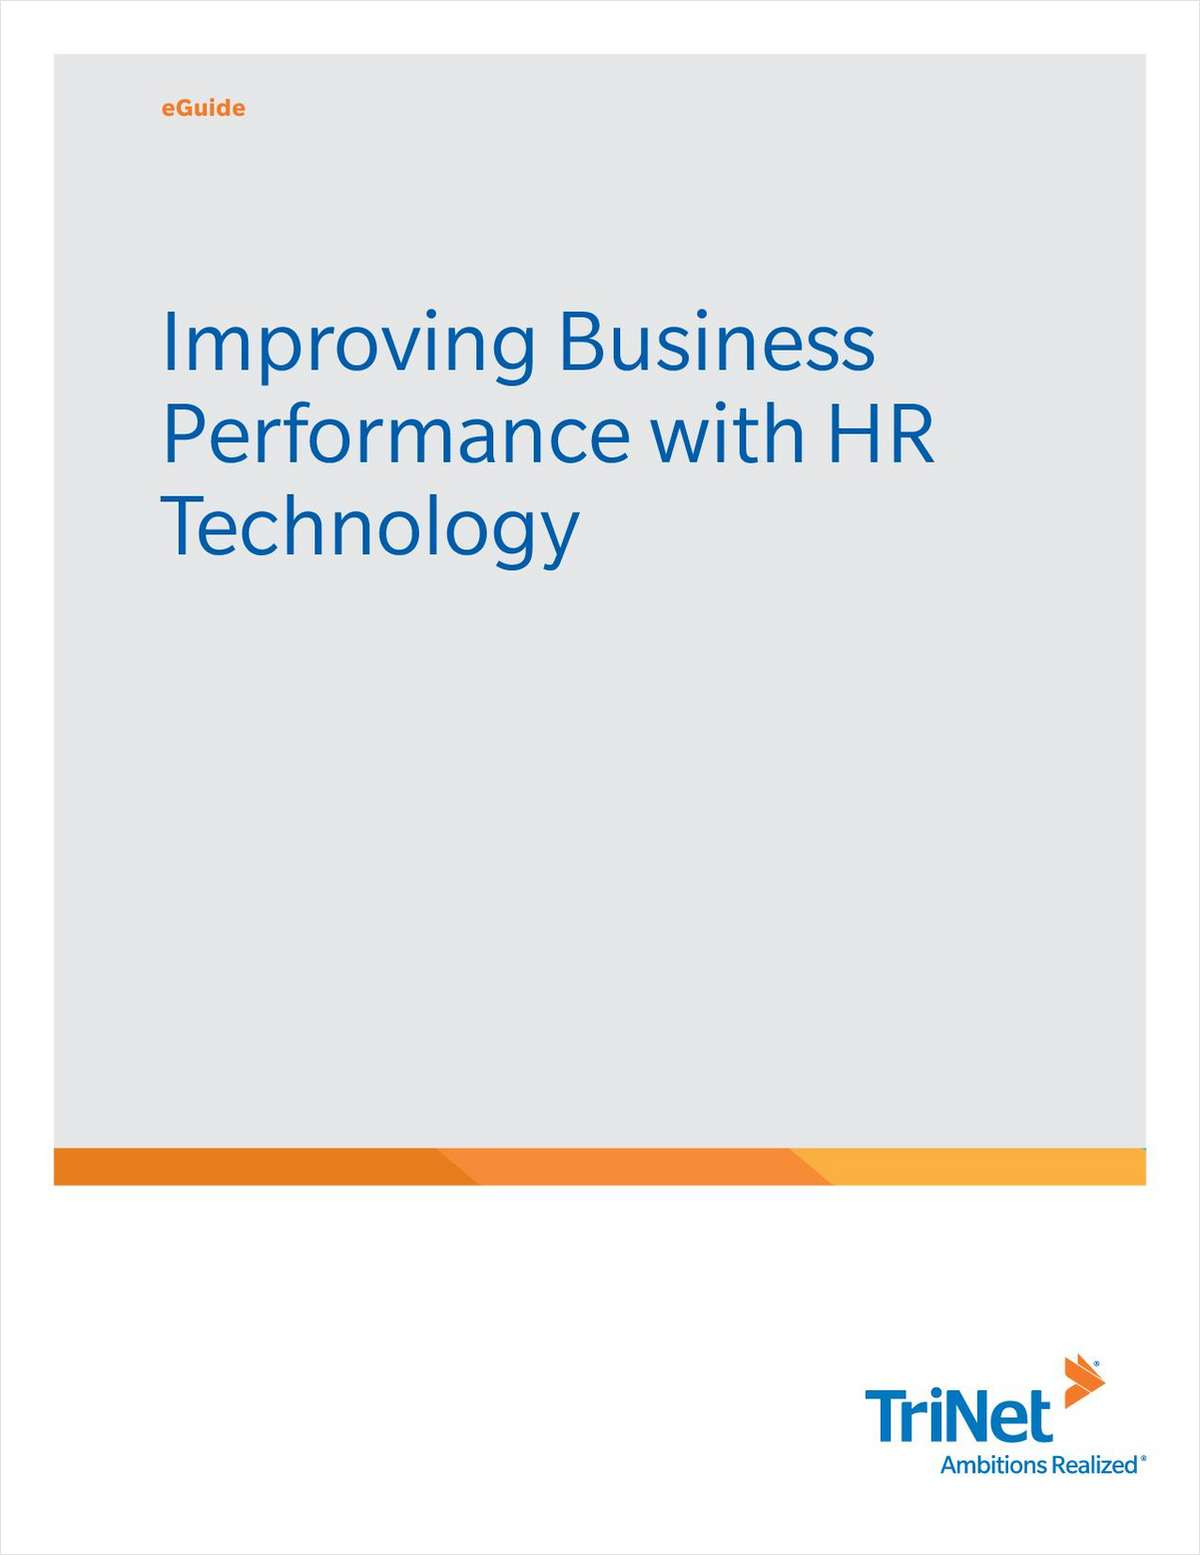 Improving Business Performance with HR Technology